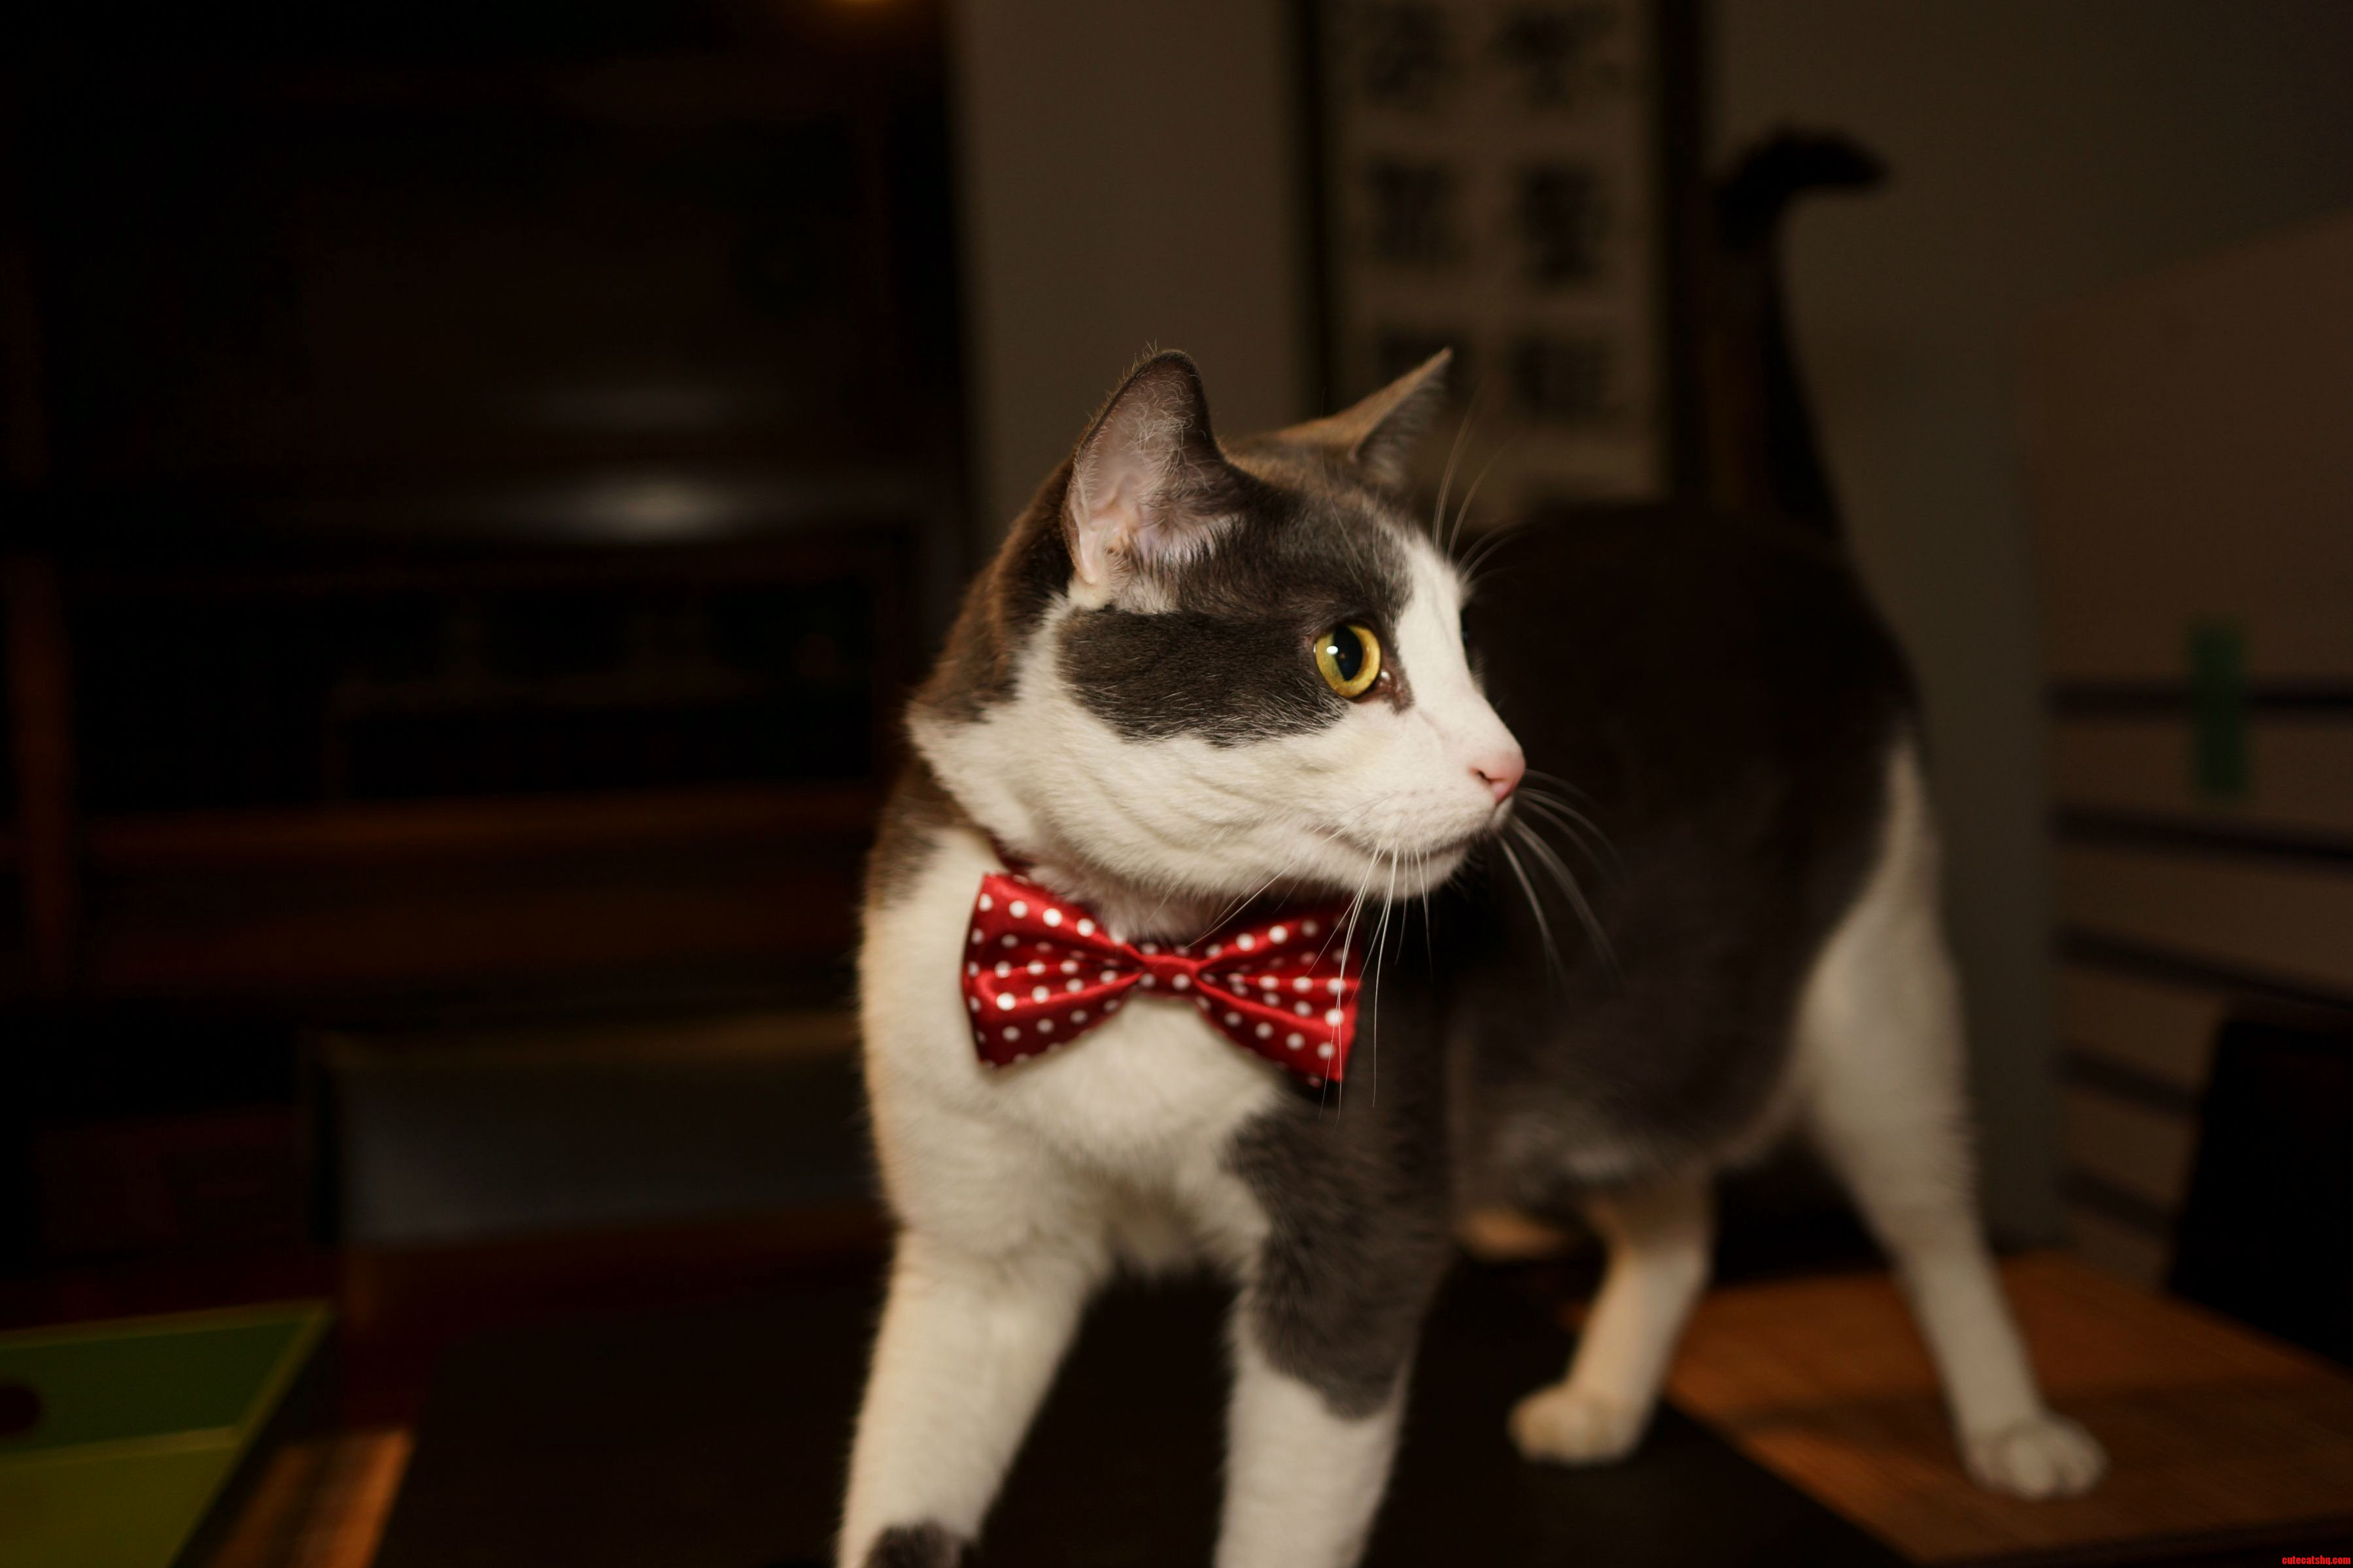 Peter is looking dapper in his valentines day bowtie